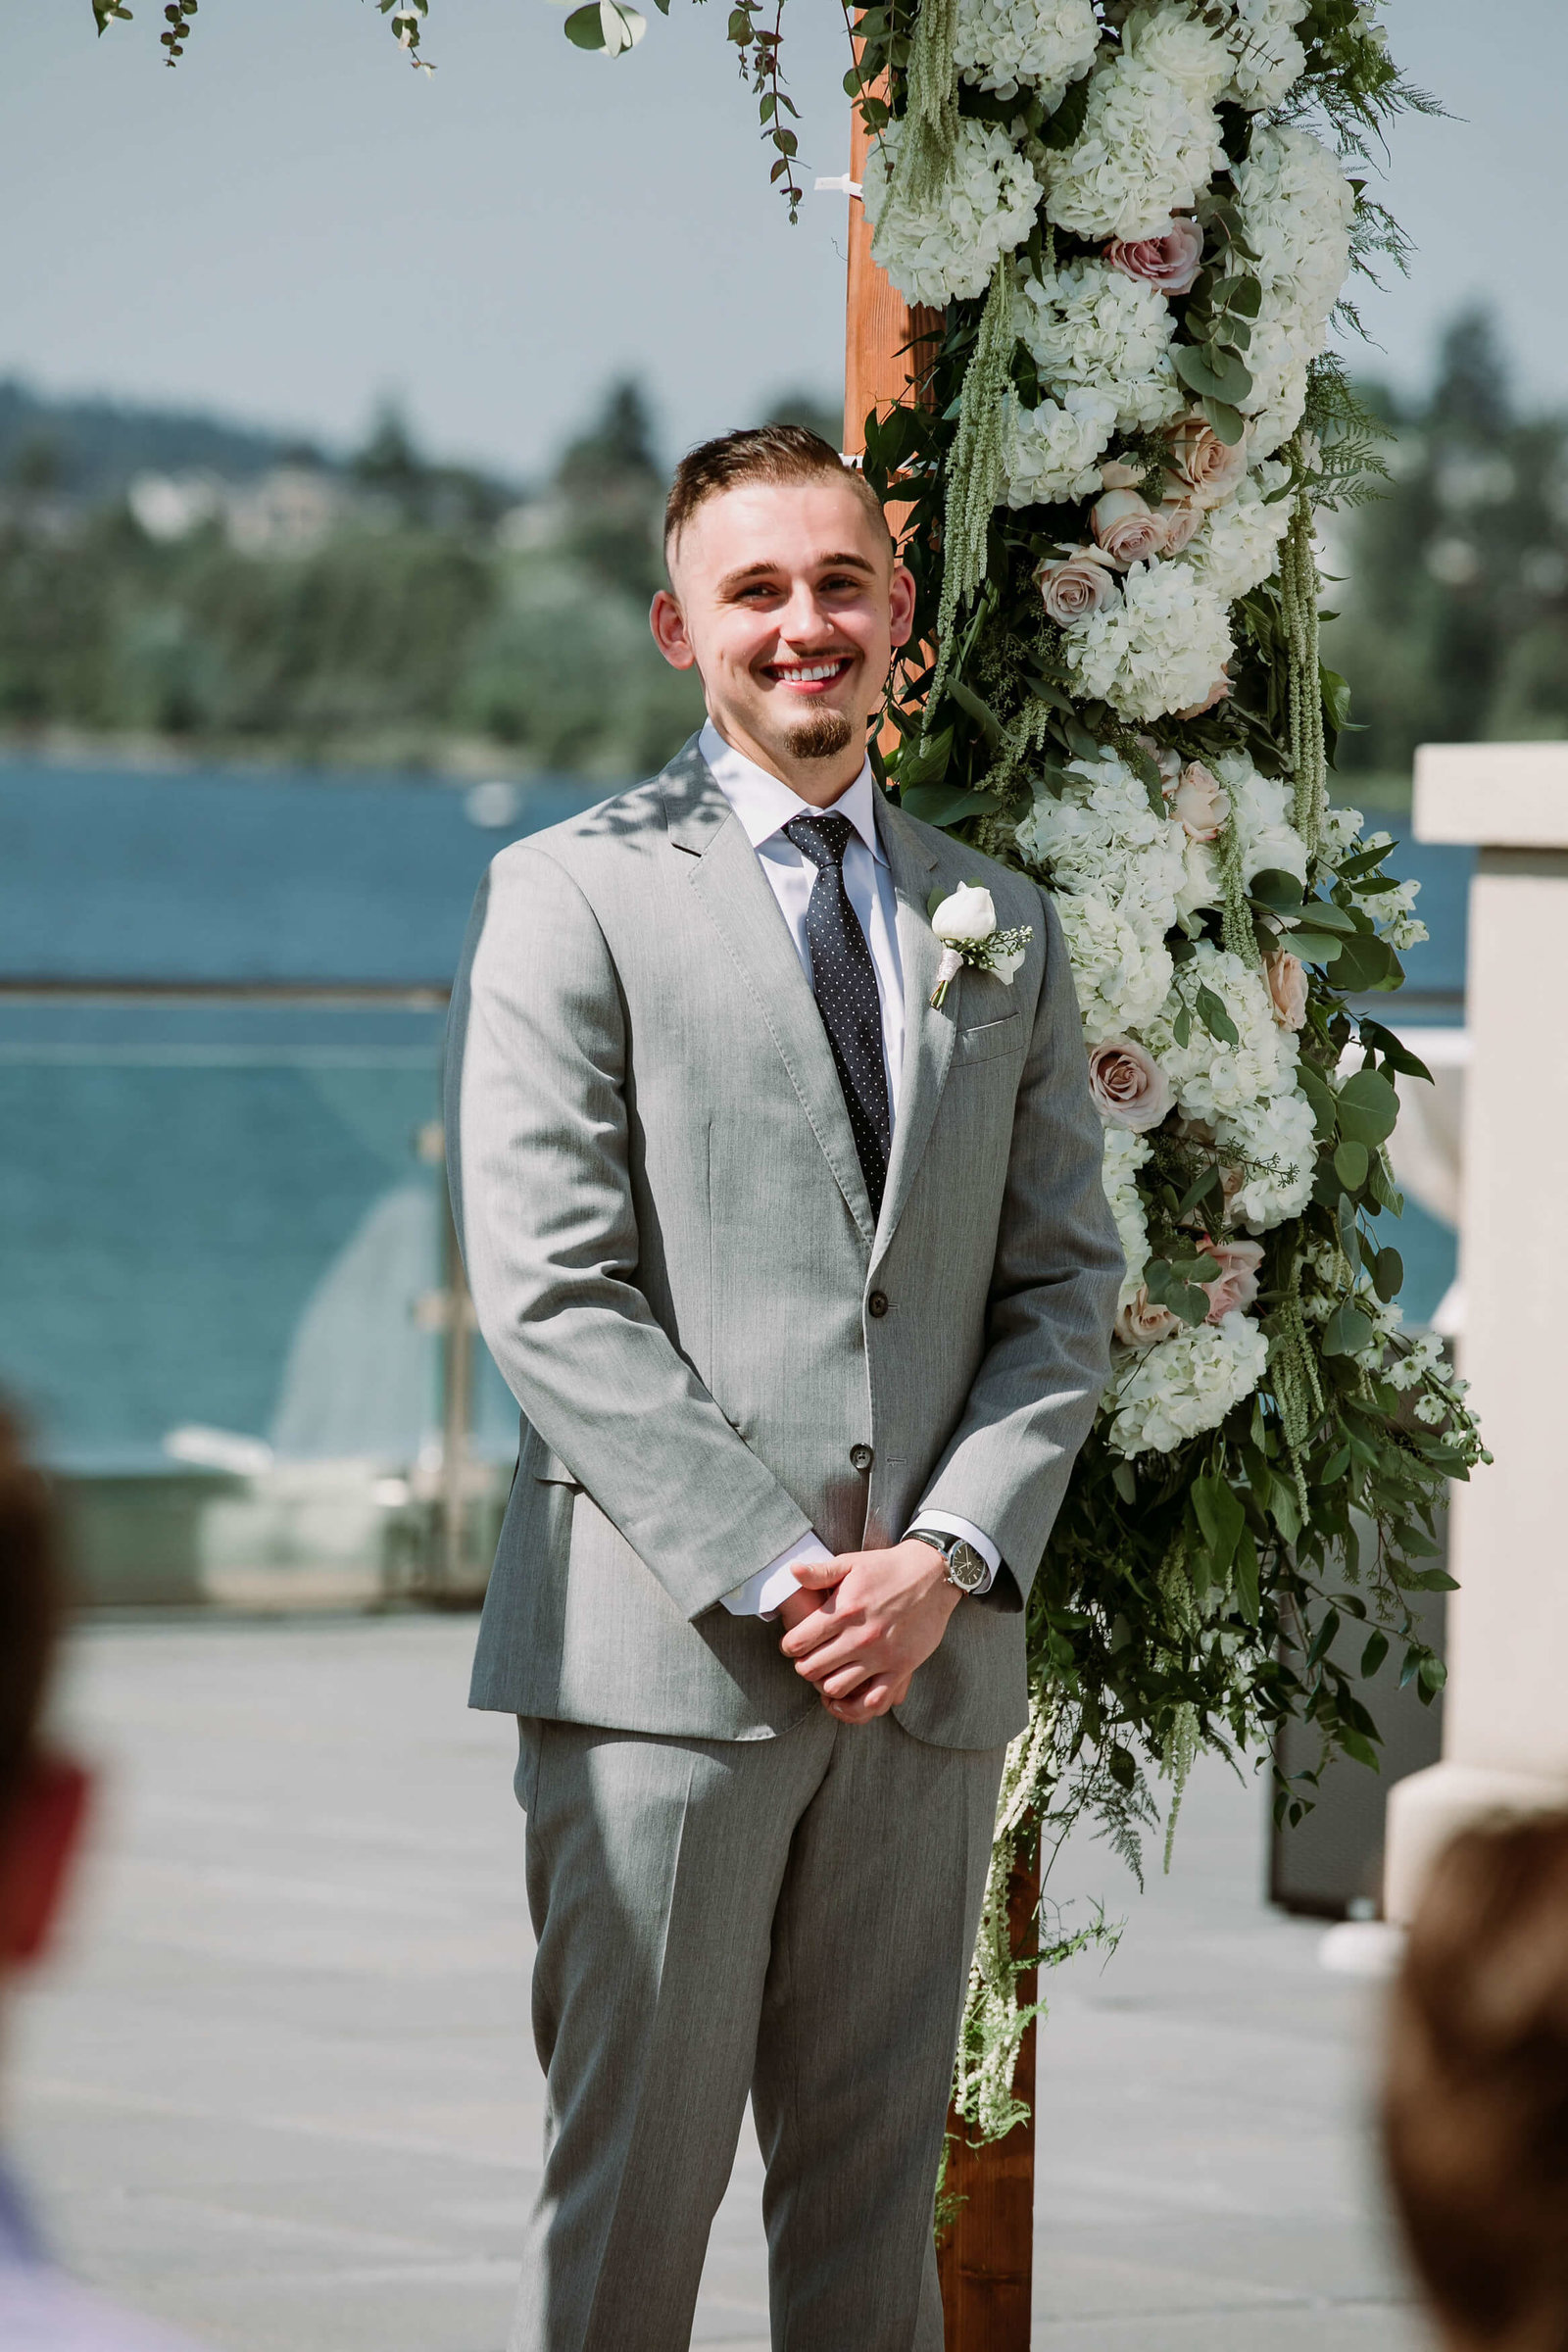 Bianca-Andriy-The-Hyatt-on-lake-washington_wedding-photos-Aug5_361